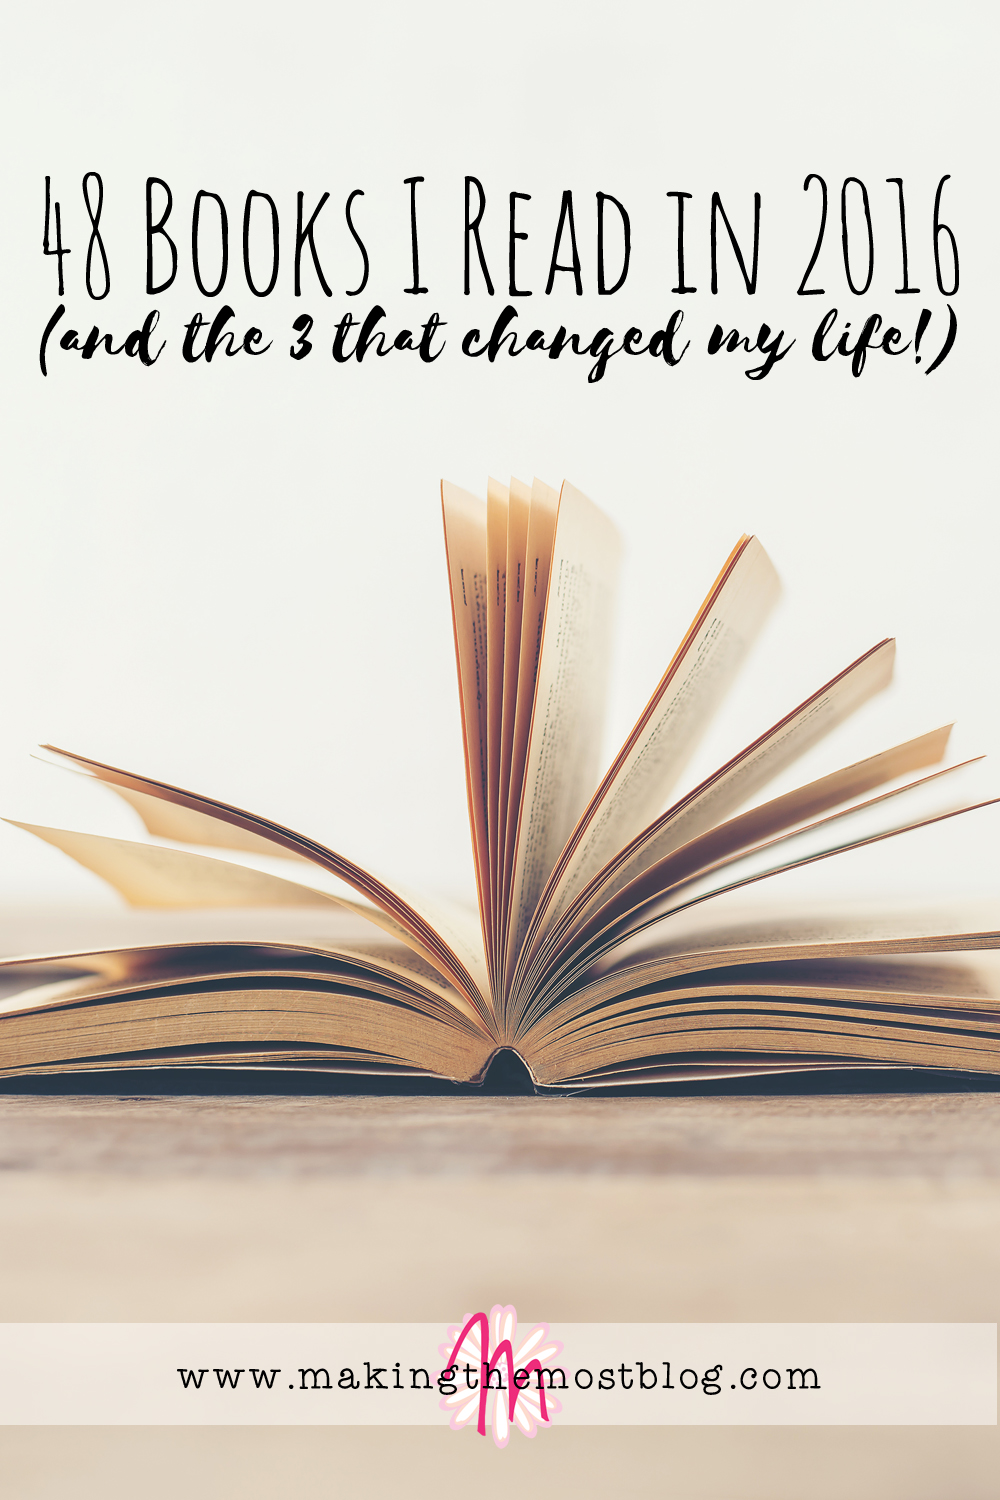 48 Books I Read in 2016 (and the 3 that changed my life!) | Making the Most Blog